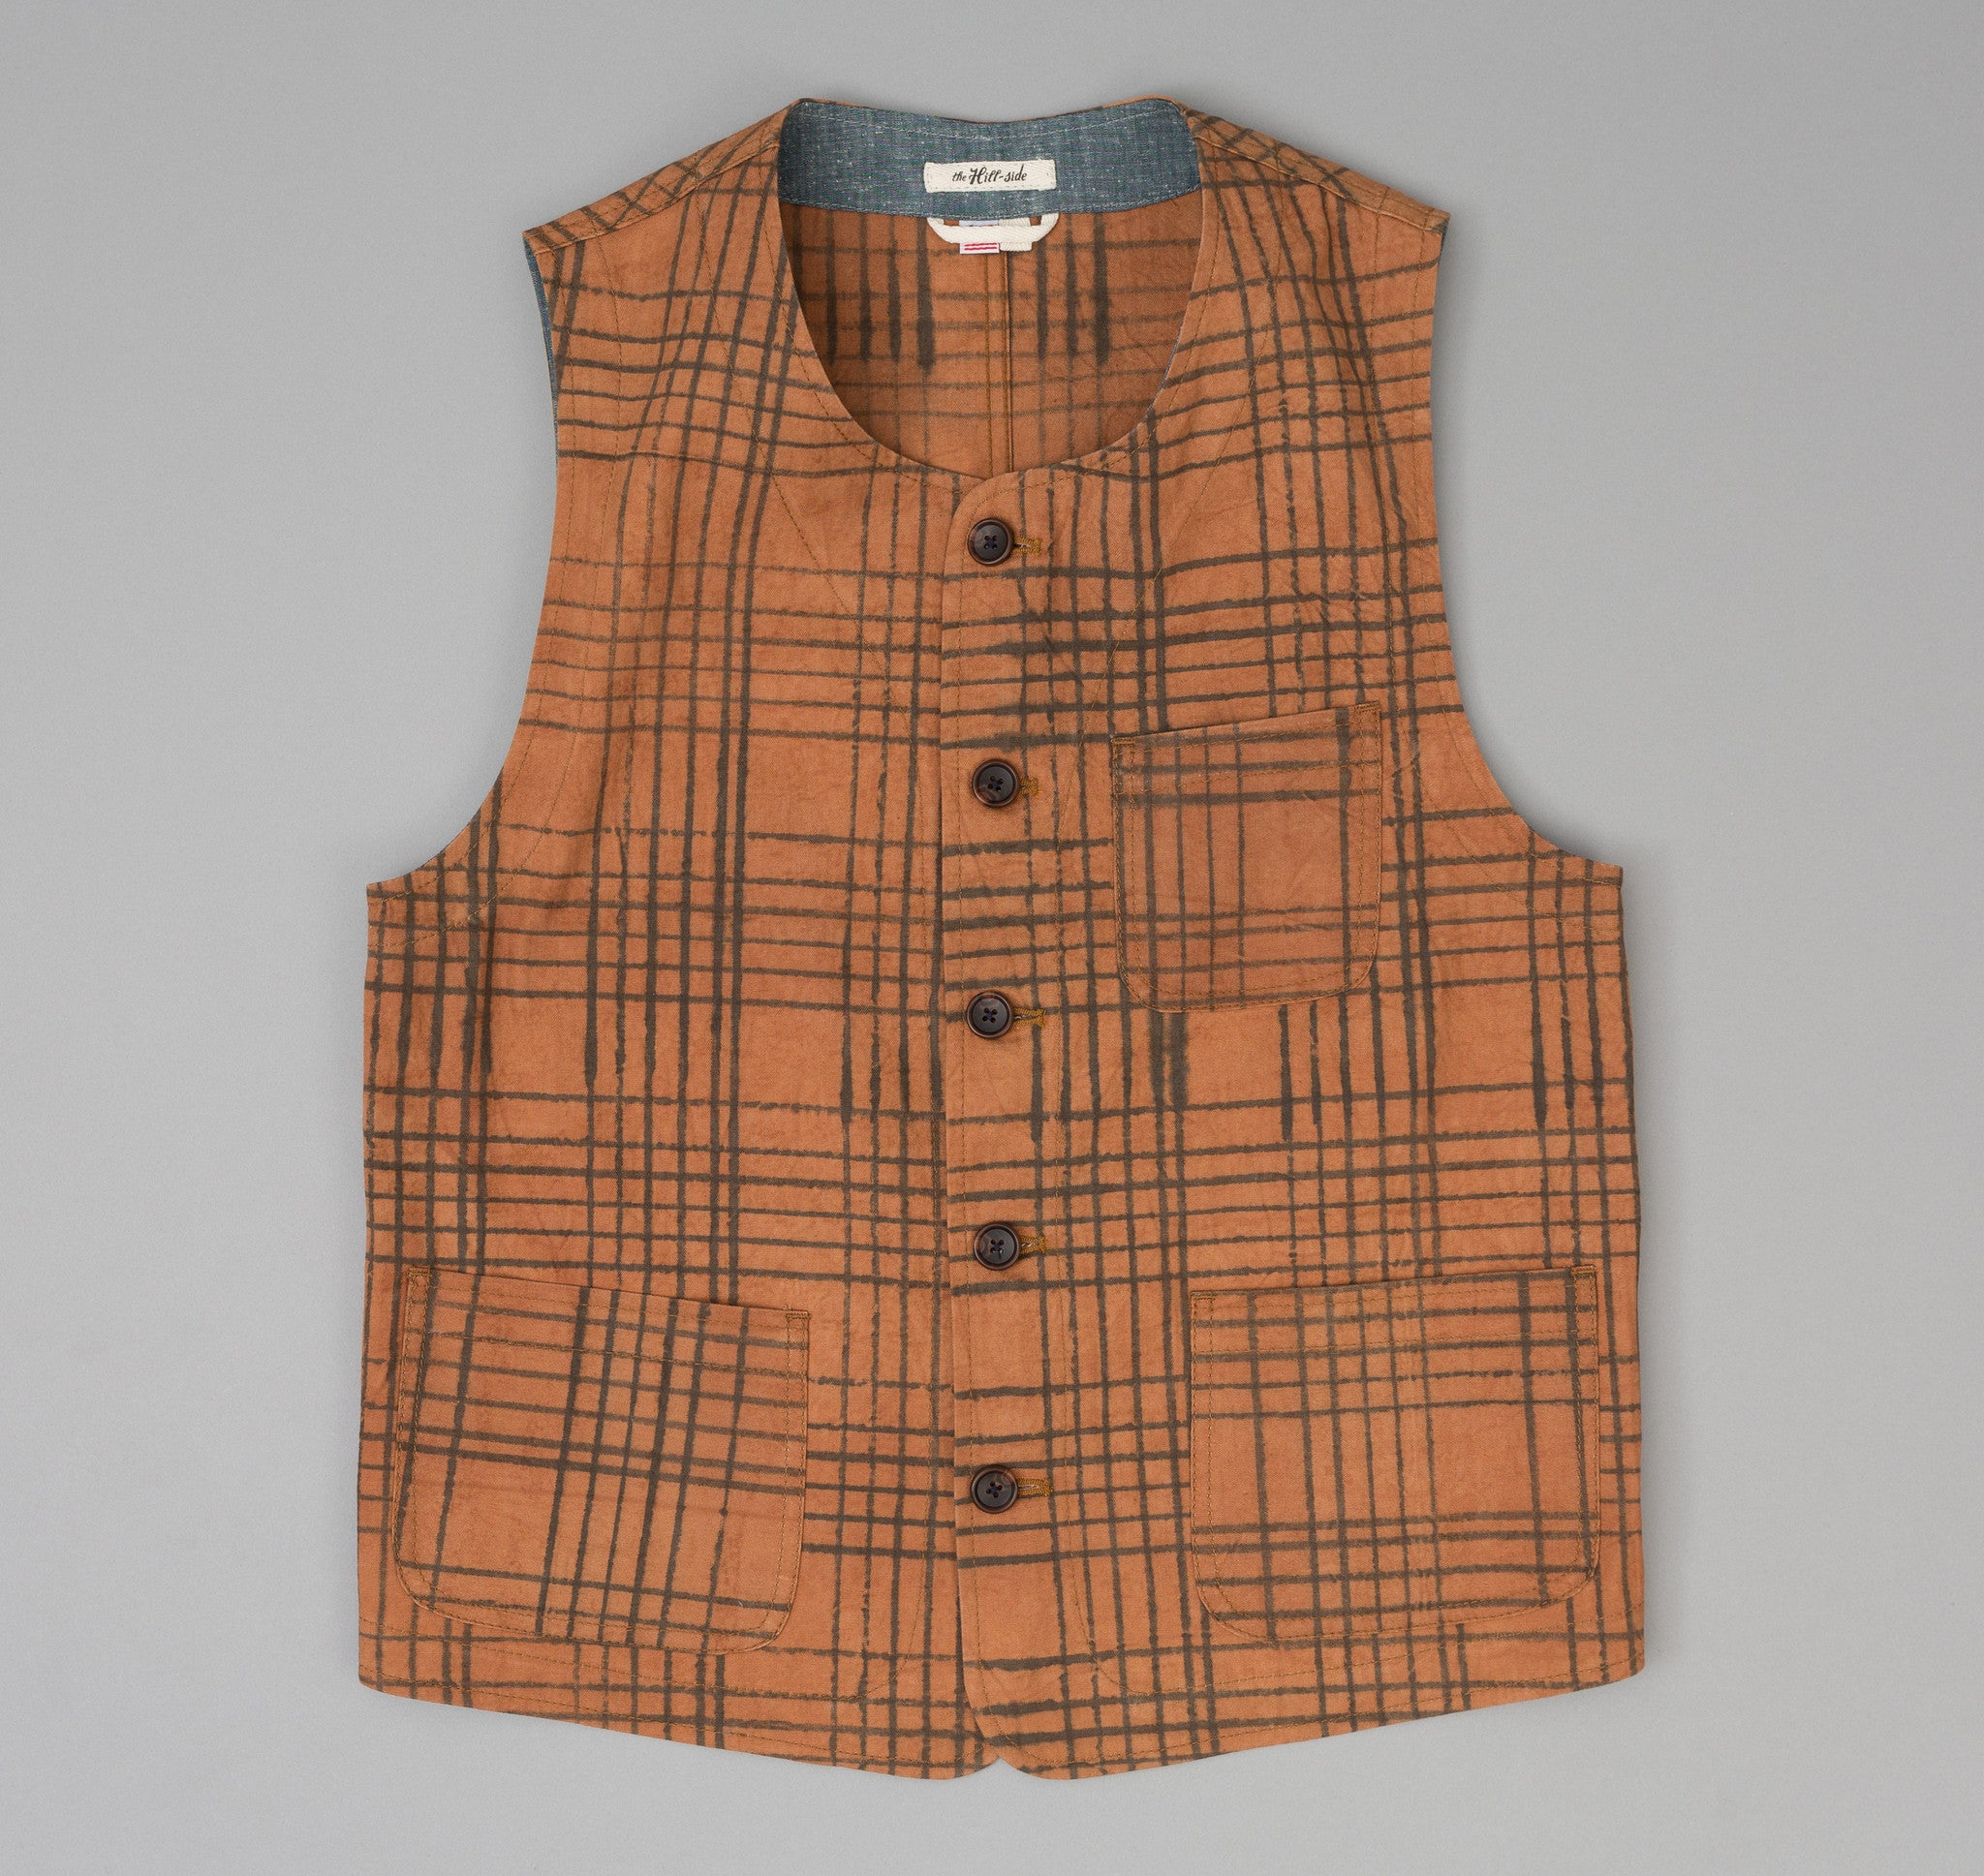 The Hill-Side - Kakishibu Dyed Cotton Oxford Weekend Vest, Hand-Drawn Check - VE1-320 - image 1